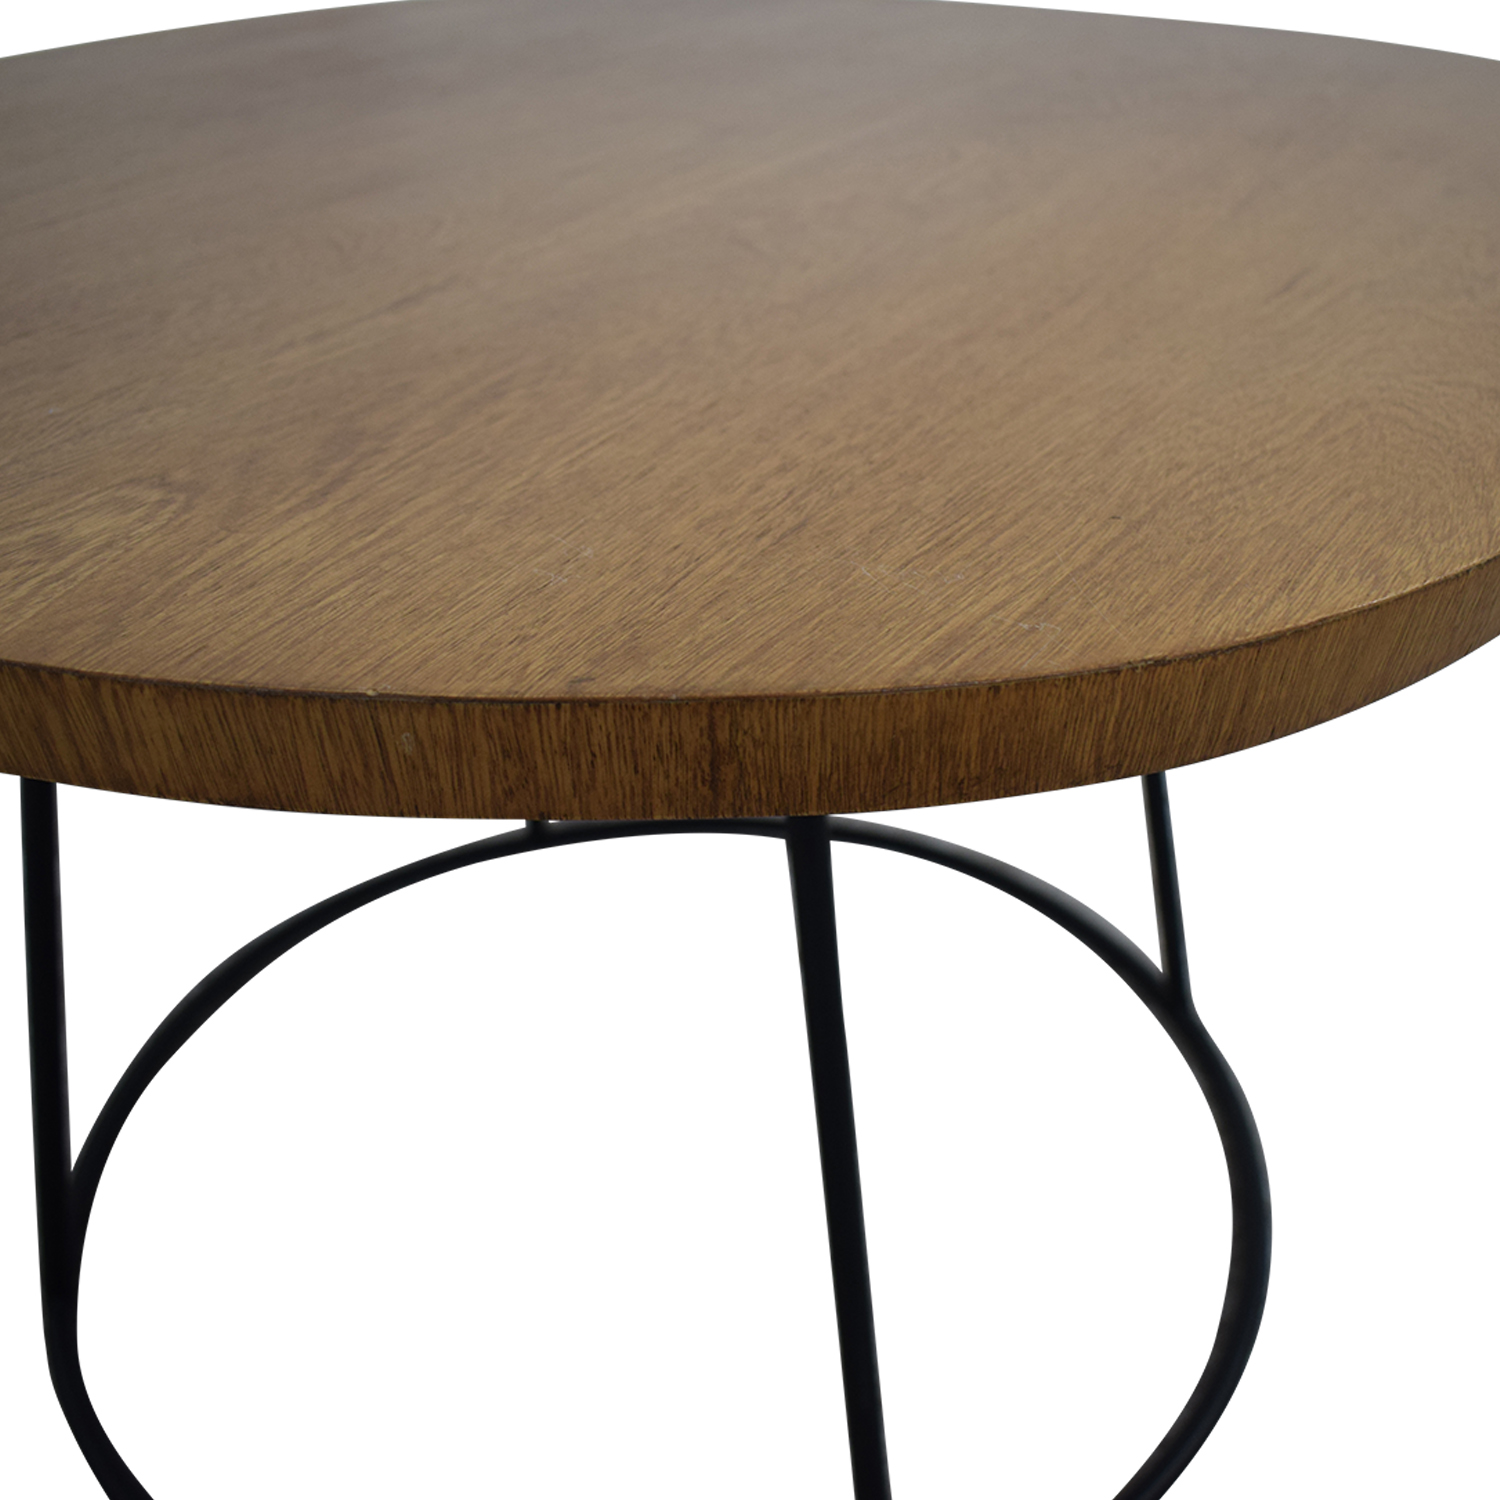 Zientte Zientte Sierra Round Cornered Square Side Table discount